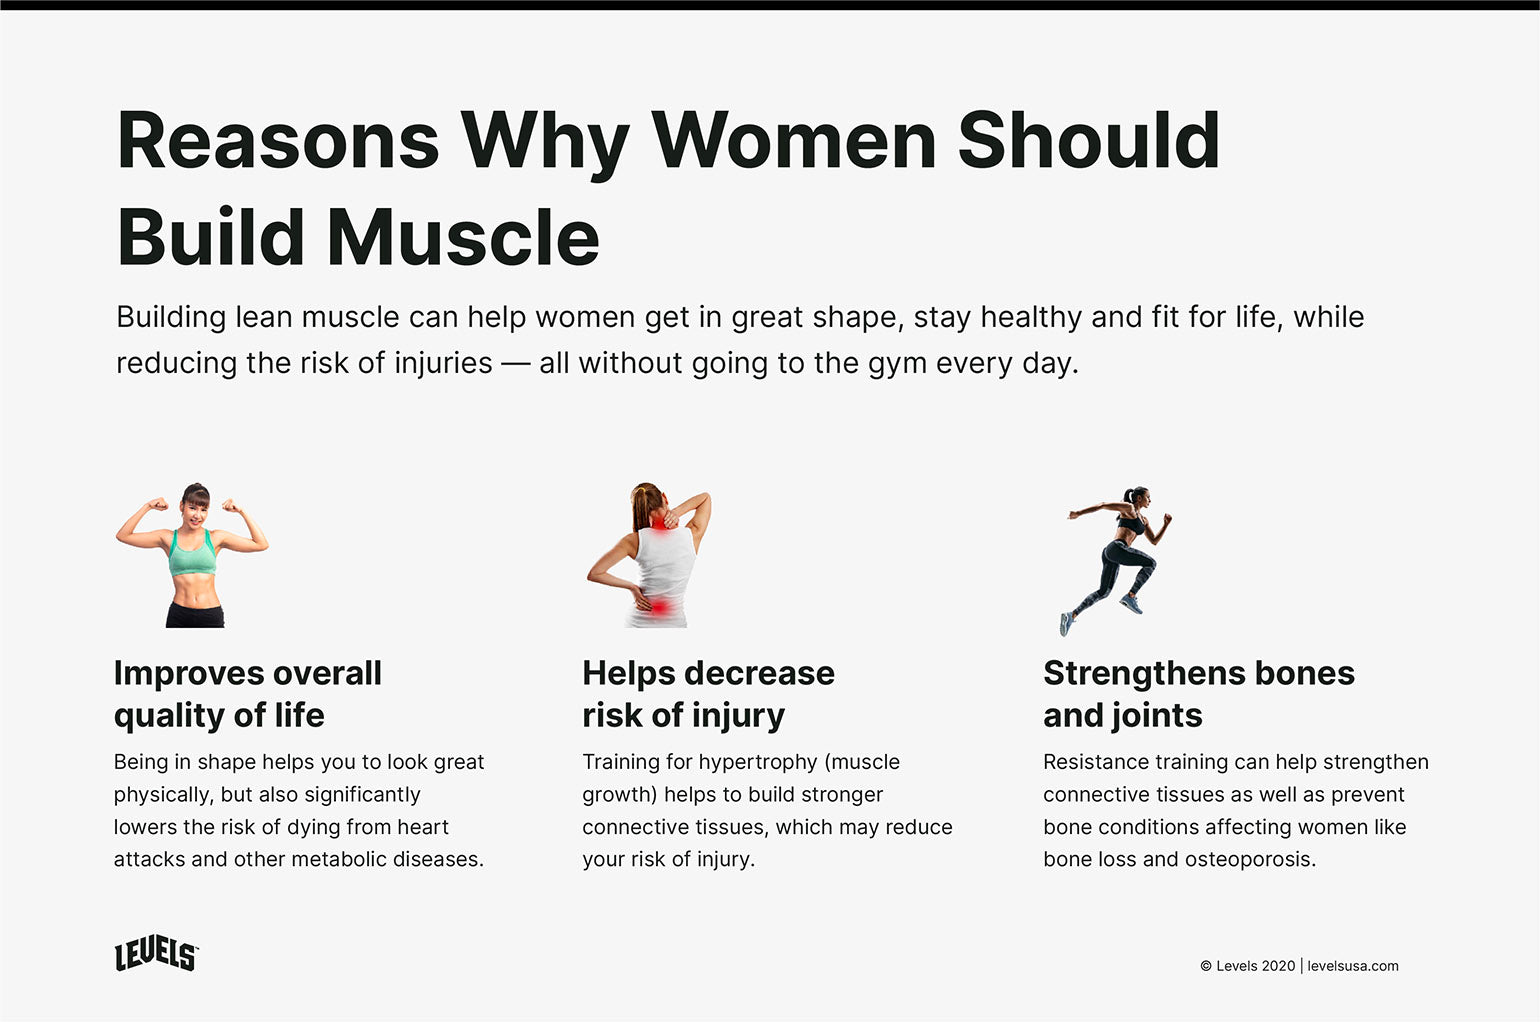 Reasons Why Women Should Build Muscle - Infographic